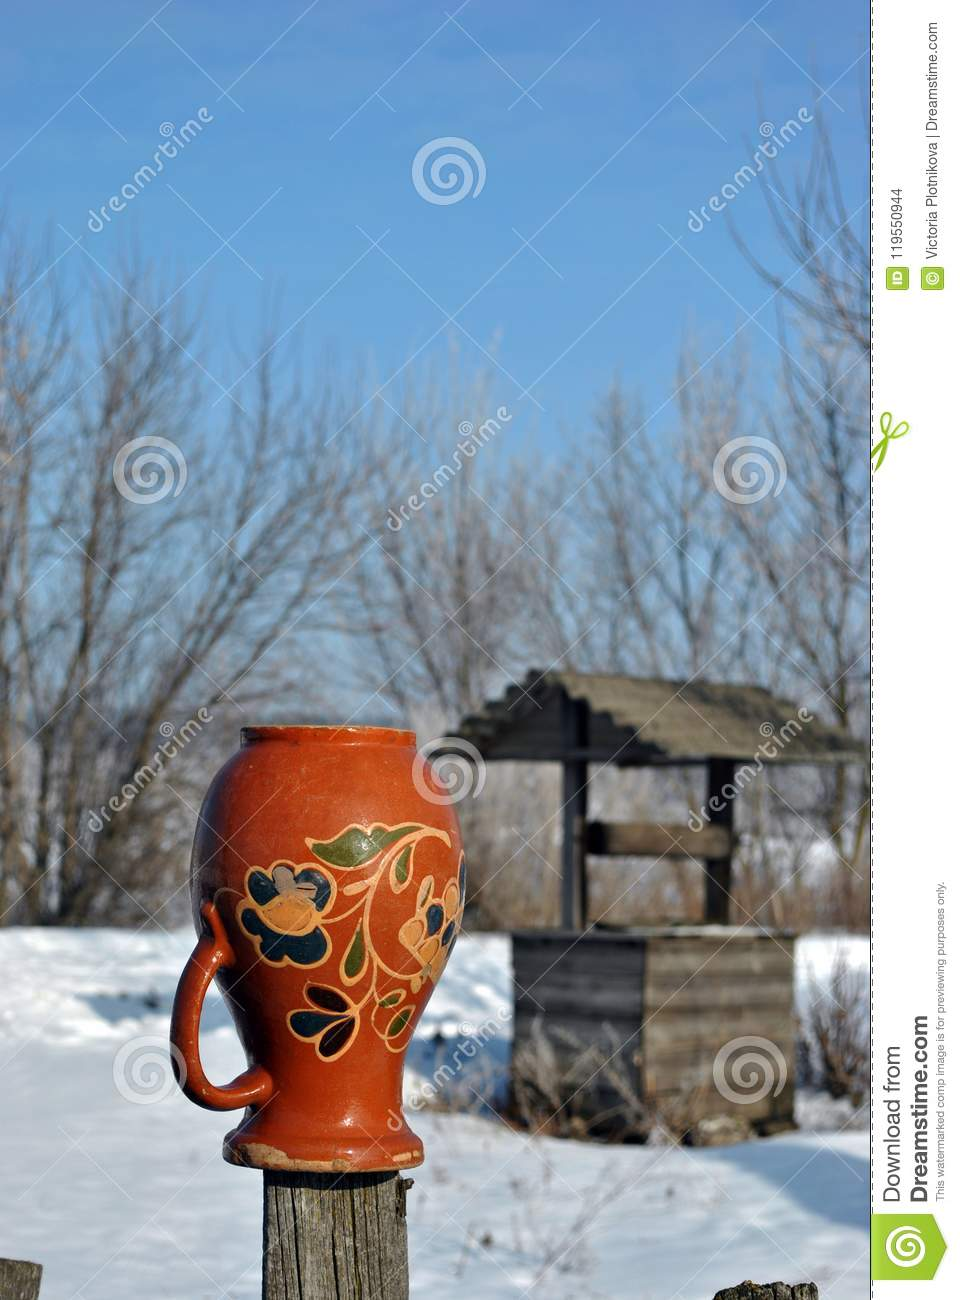 Traditional Ukrainian rural landscape with a wooden well and fence with hanging pitcher on it with Petrykivka folk painting